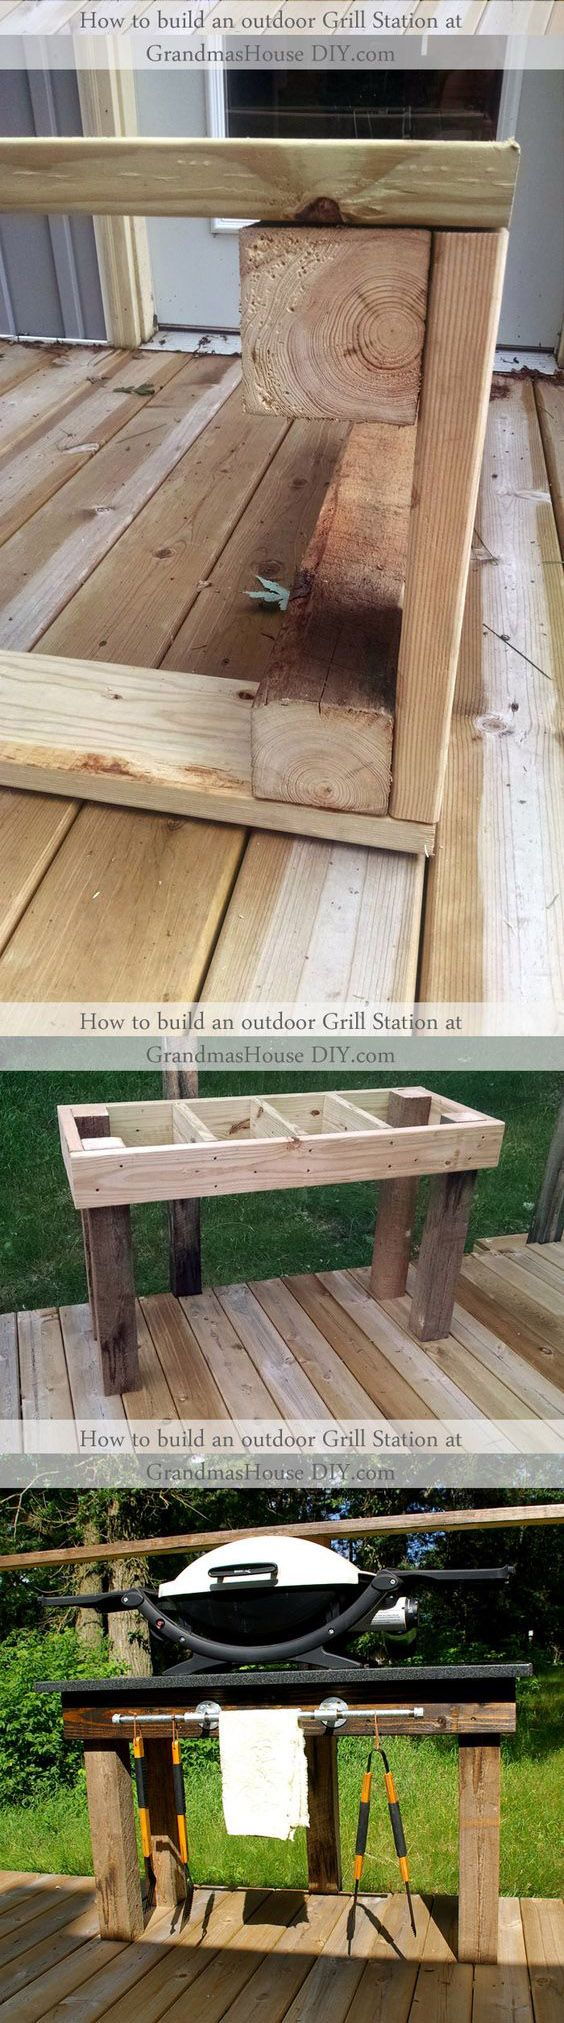 Inspiration Board: A Summer Project I Can't Wait To Build! Wood Working